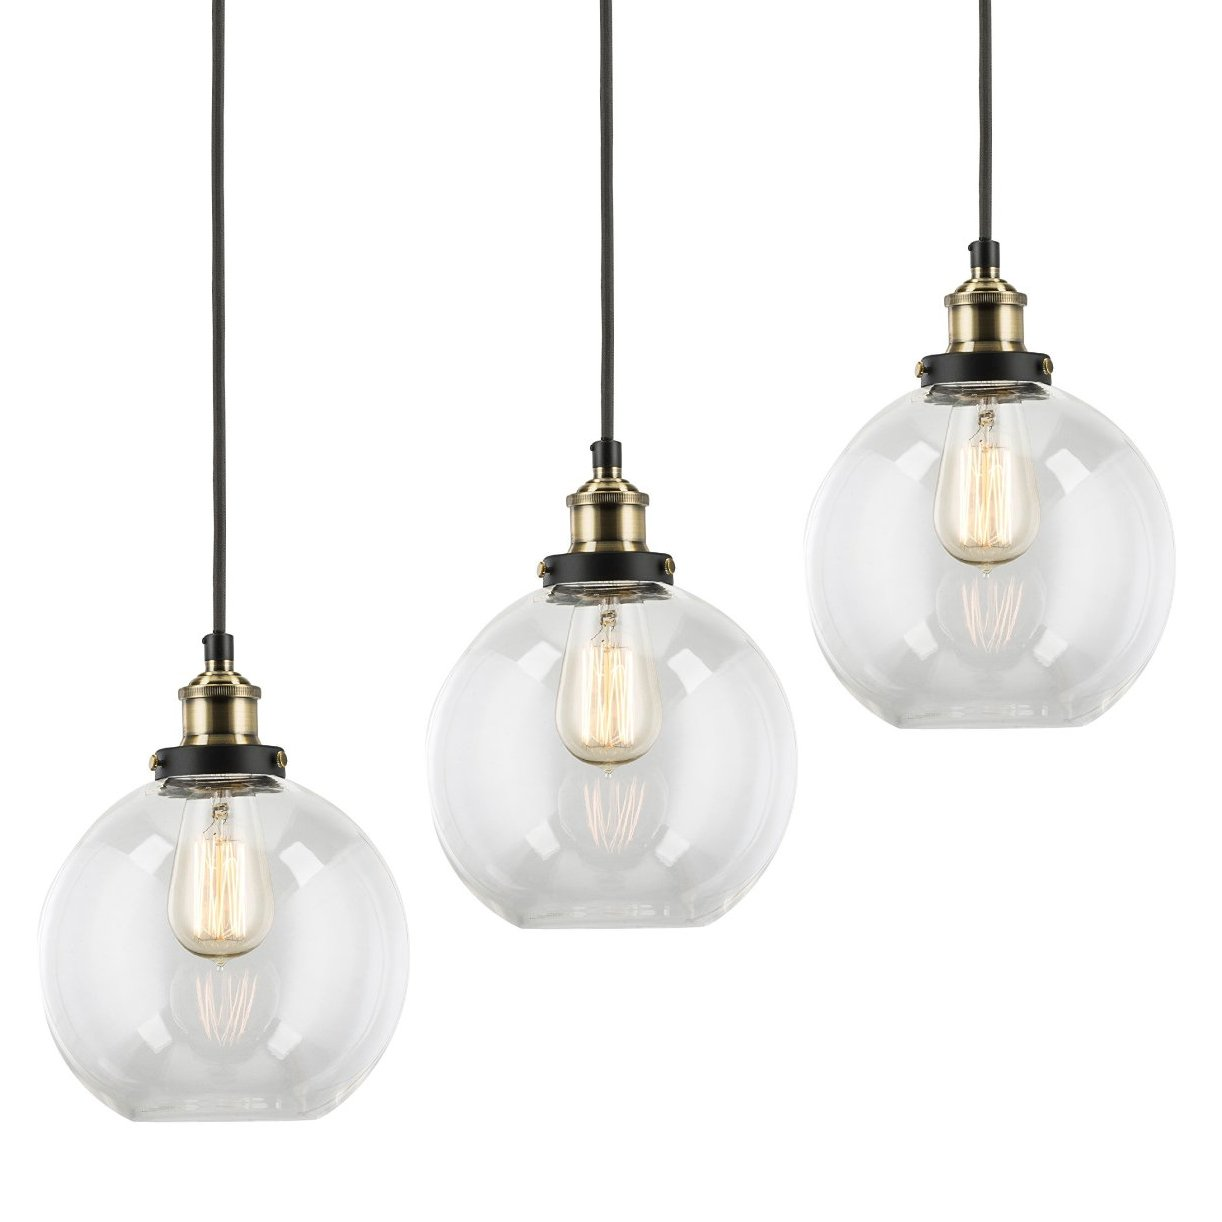 3-Pack Modern Industrial Vintage Glass Globe Pendant Light - MKLOT Minimalist Eco-Power Edison Style 7.87'' Wide Hanging Chandelier Ceiling Lighting Mounted Fixture with Clear Glass